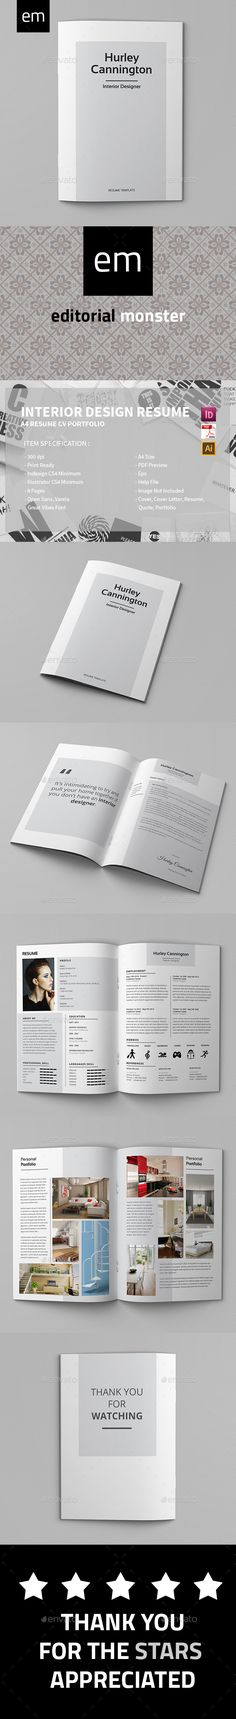 Claire Callis \/\/ Interior Design Resume Design Pinterest - examples of interior design resumes